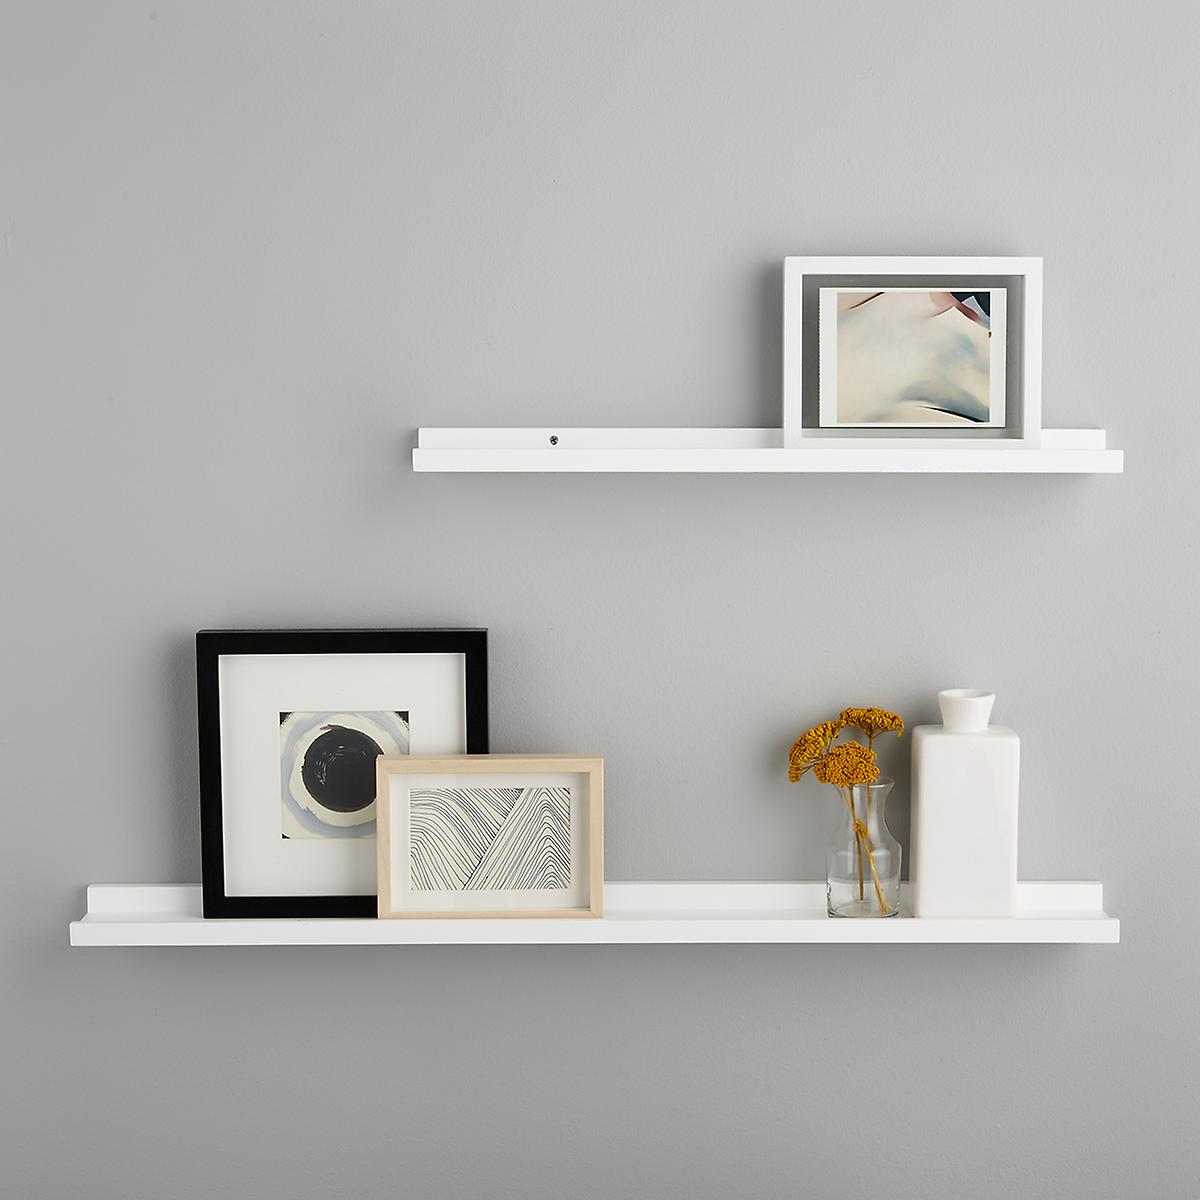 white ledge wall shelves the container shelf floating addis basin sneakers single bathroom vanity pottery barn shoe cabinet furniture cute brackets double sink ideas kitchen metal